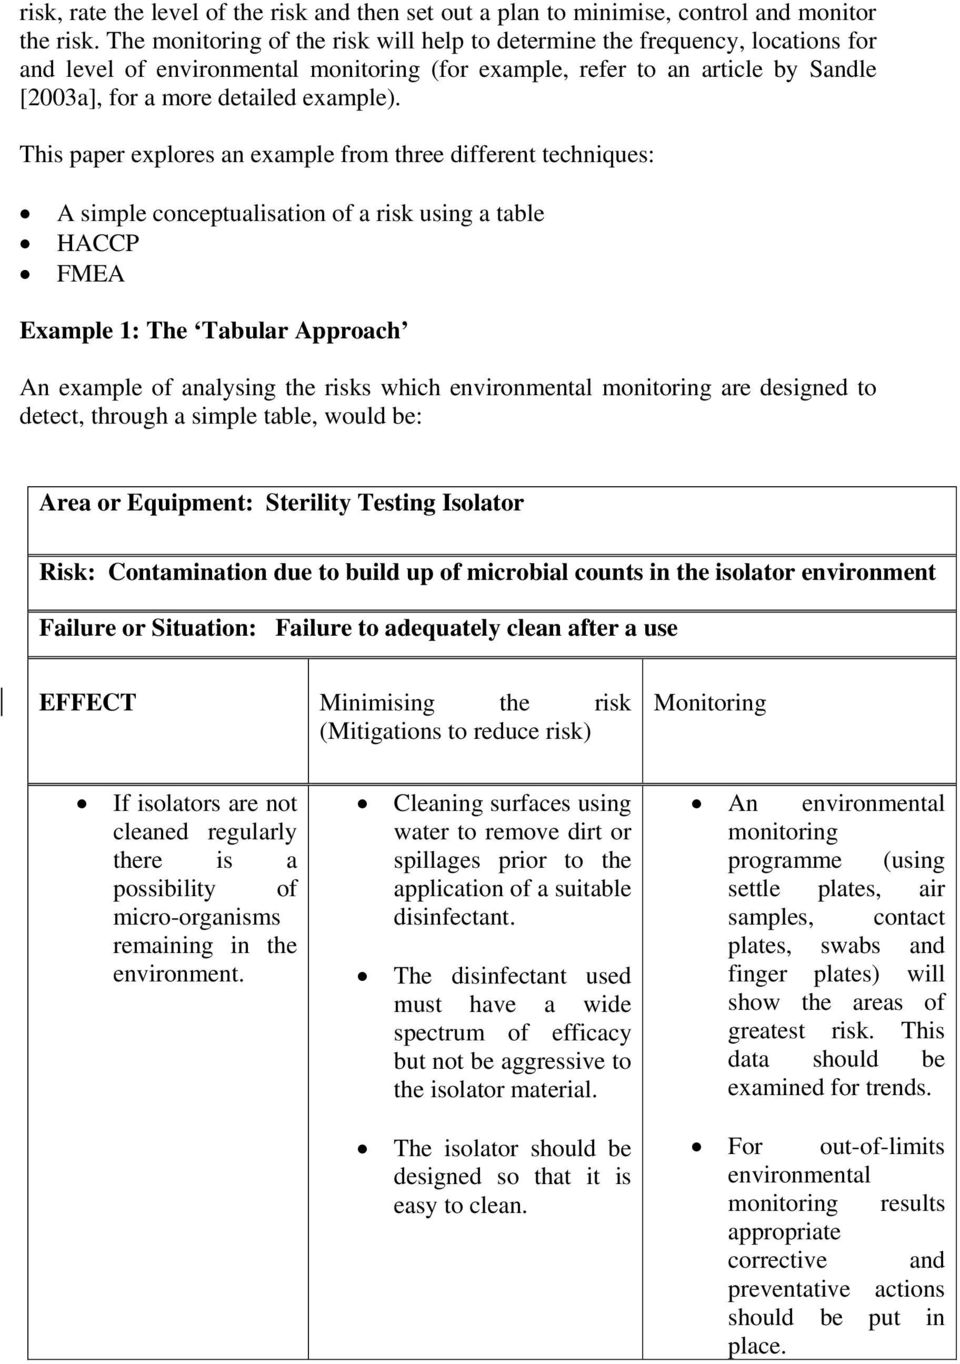 This paper explores an example from three different techniques: A simple conceptualisation of a risk using a table HACCP FMEA Example 1: The Tabular Approach An example of analysing the risks which